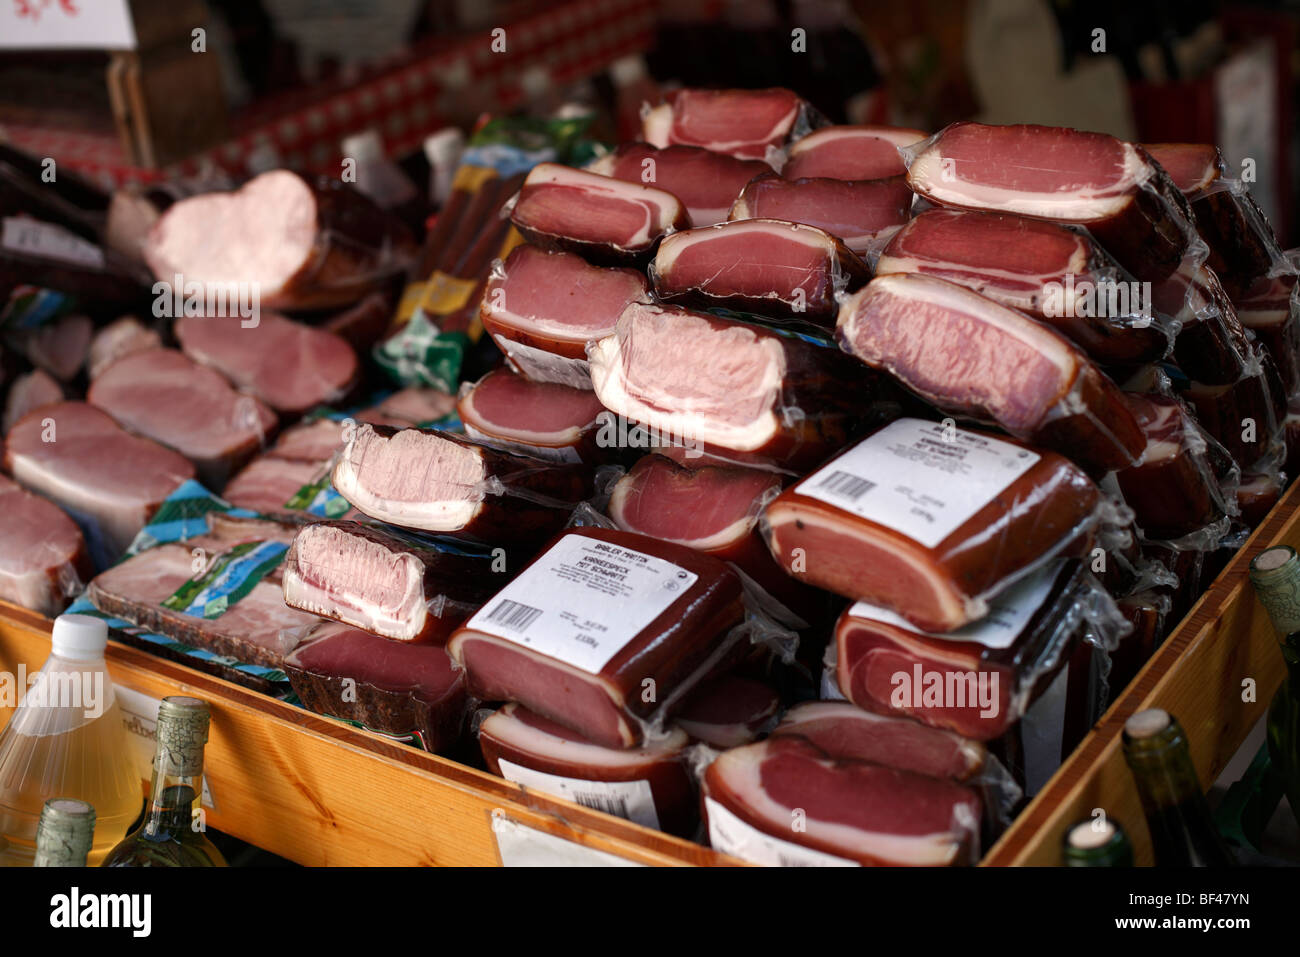 Cured meat on sale on a market stall in Germany - Stock Image